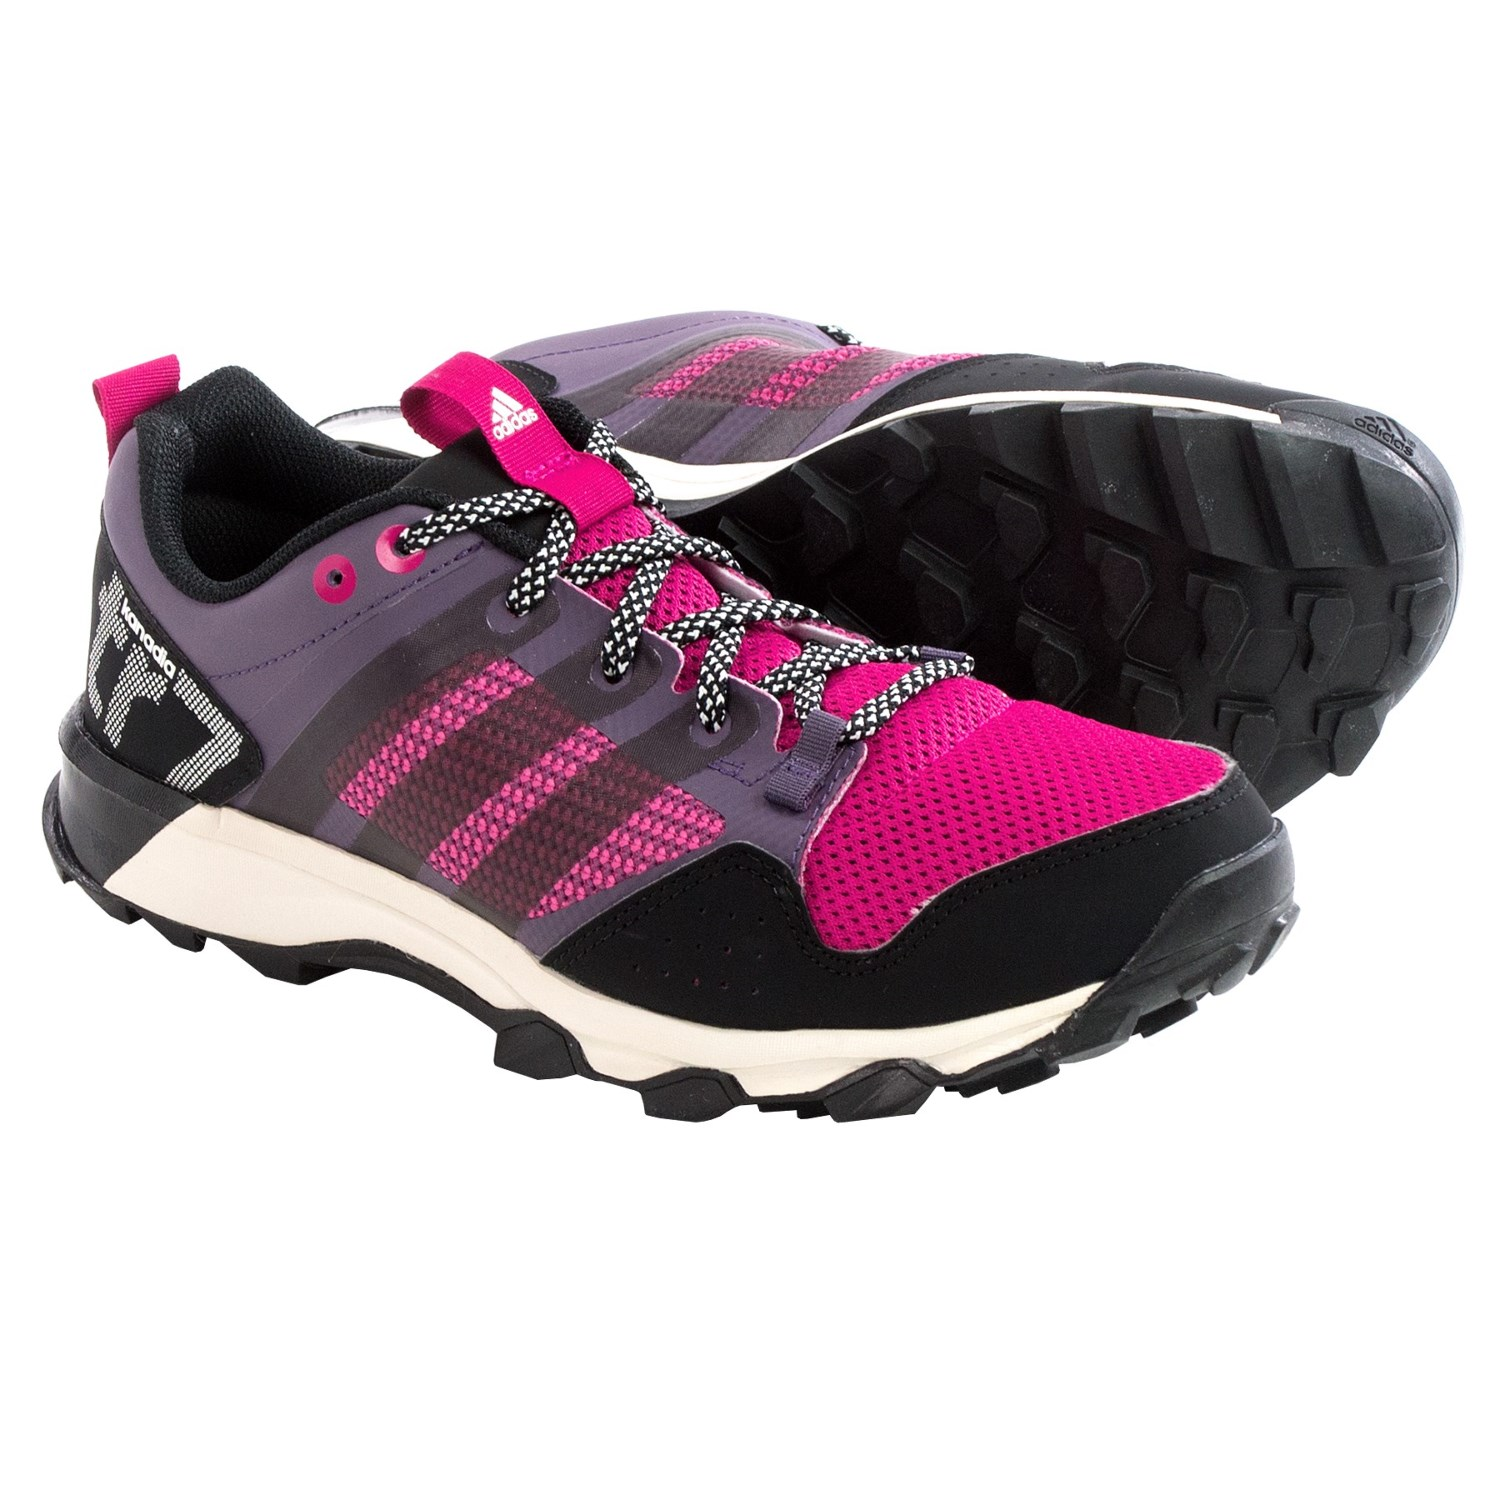 adidas outdoor kanadia 7 trail running shoes for